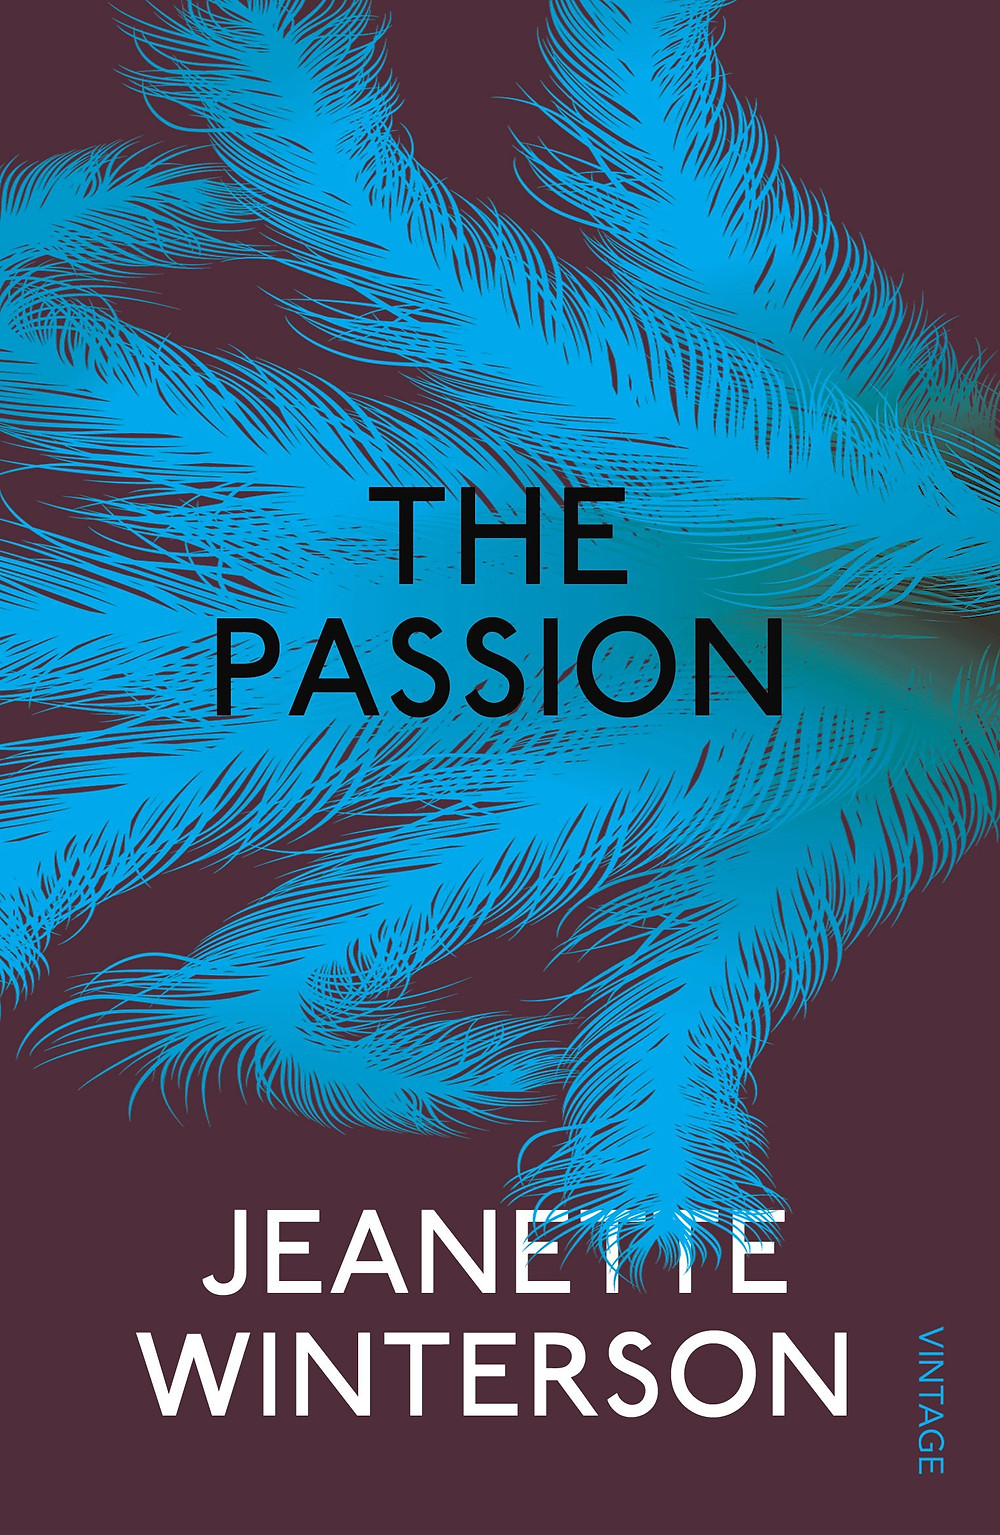 The Passion - by Jeanette Winterson